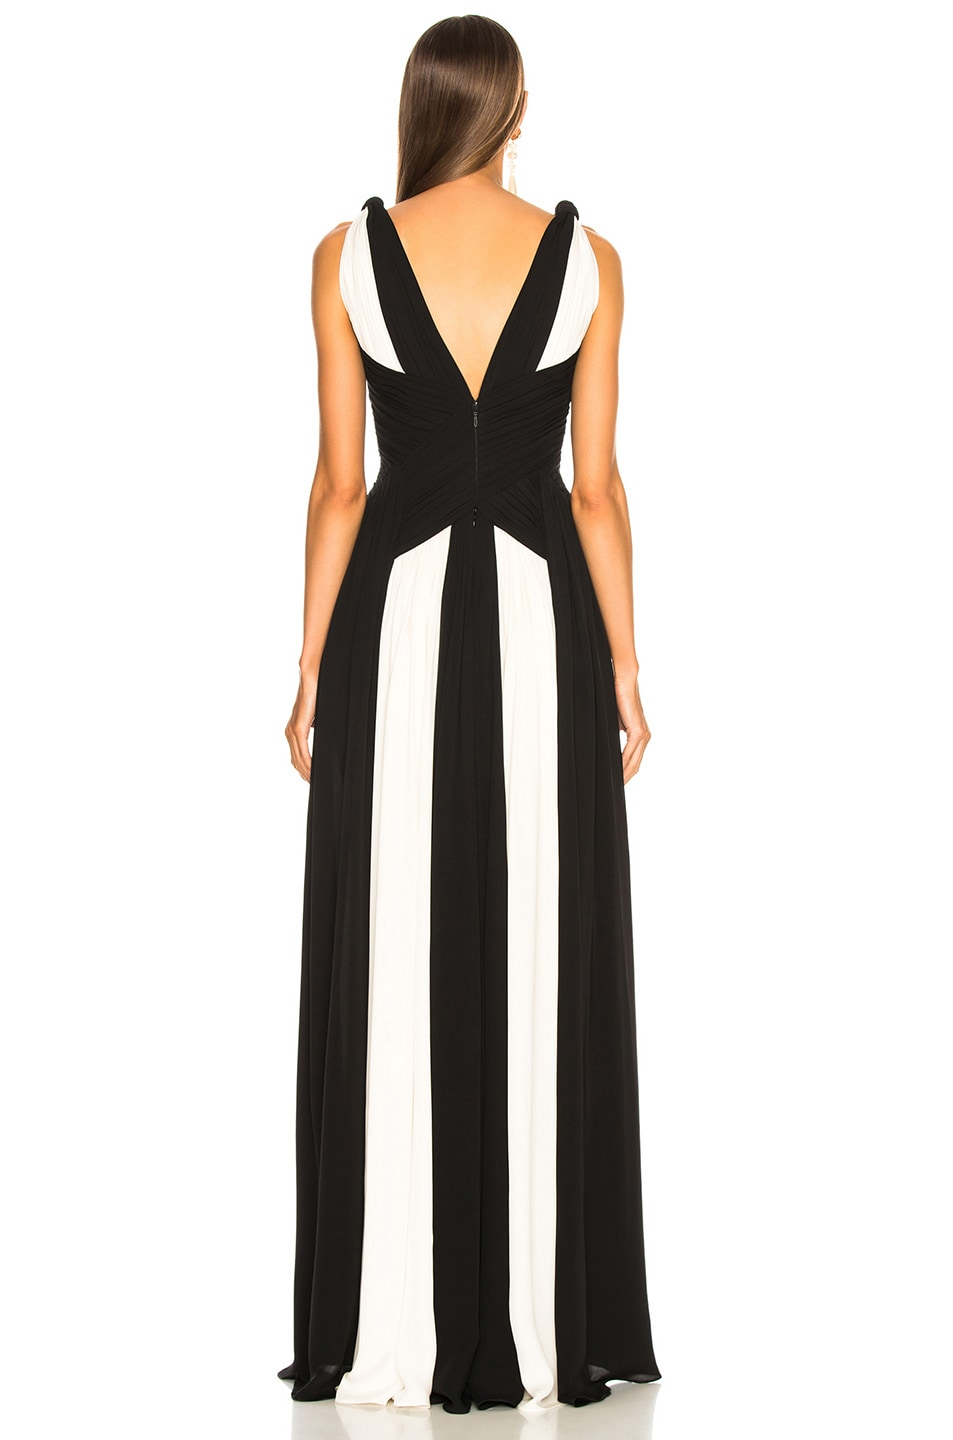 Image 4 of Zuhair Murad Draped Sleeveless Gown in Black & White